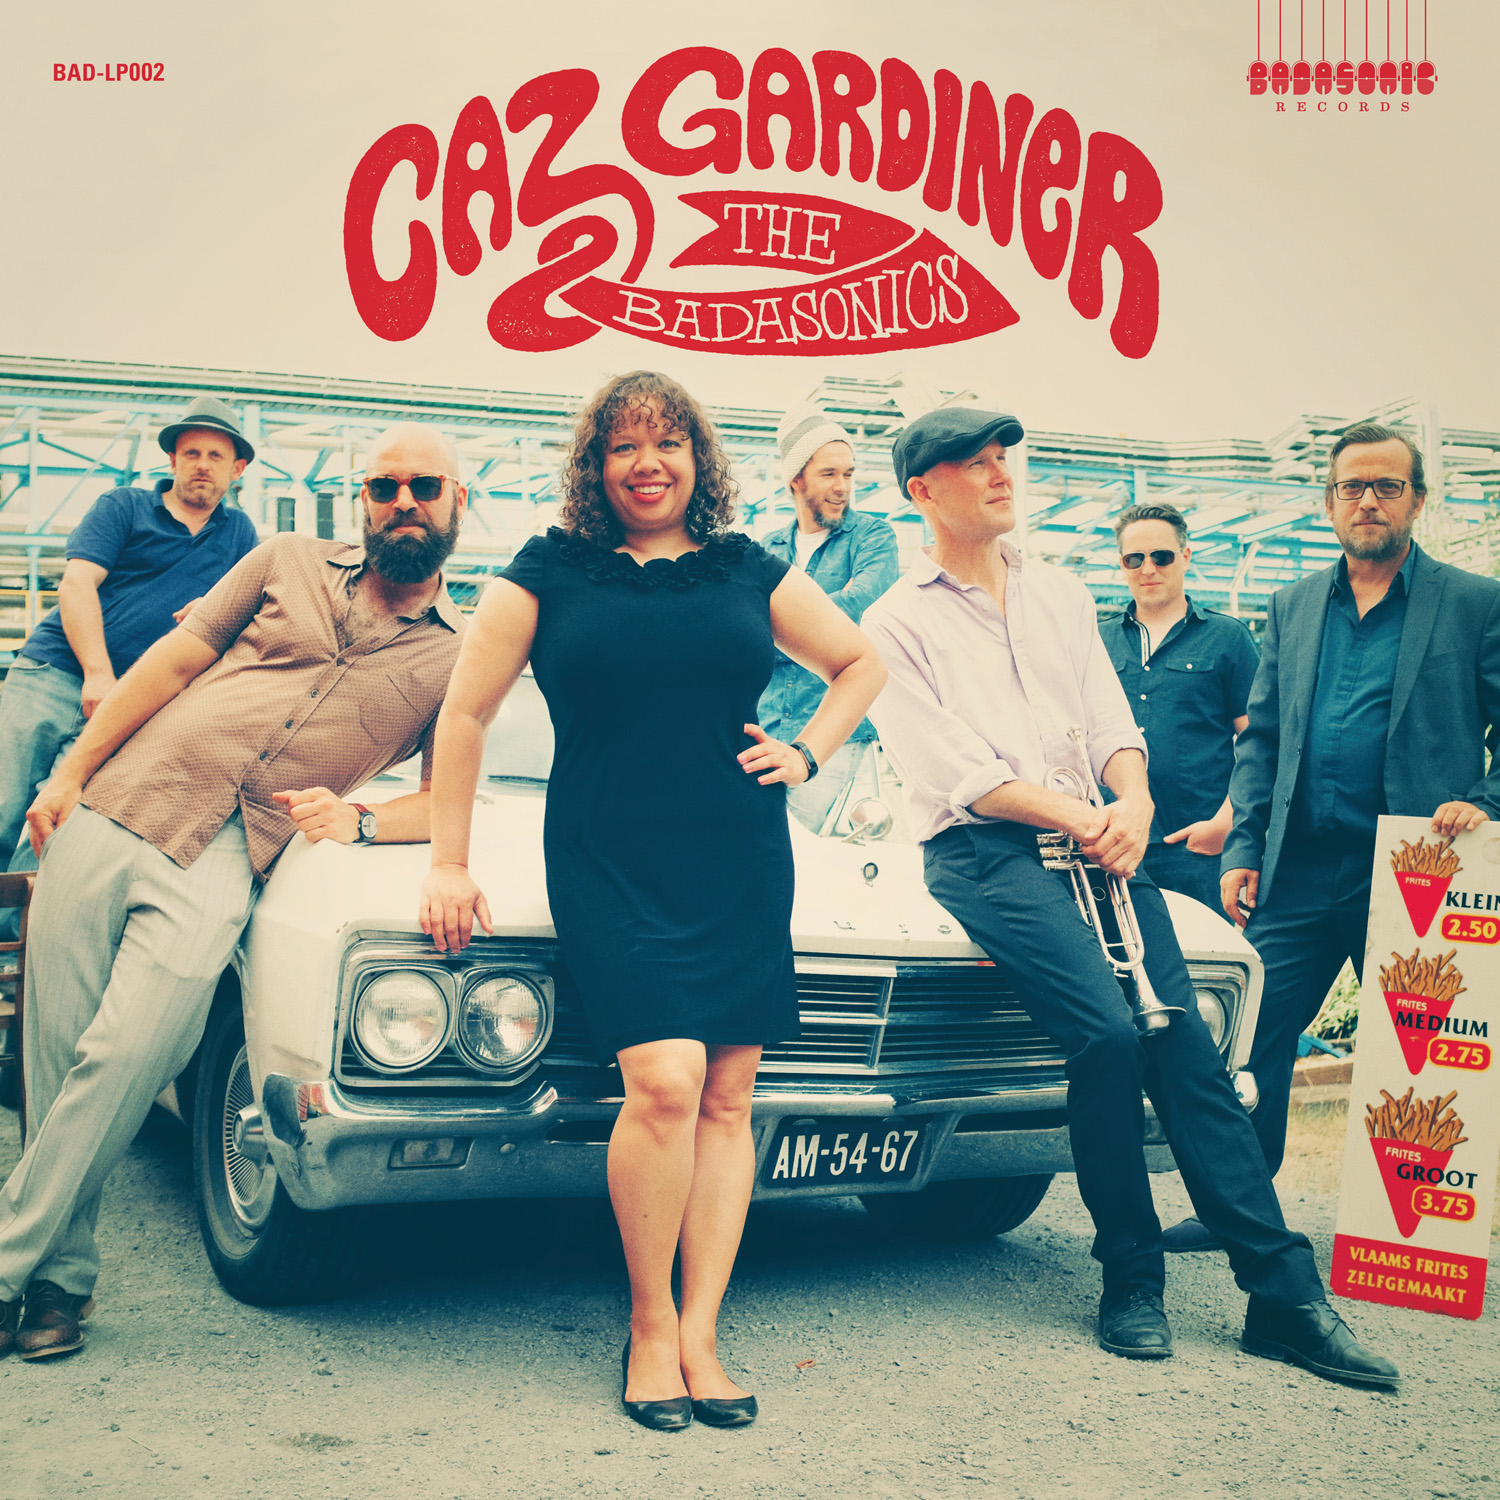 Caz Gardiner & The Badasonics